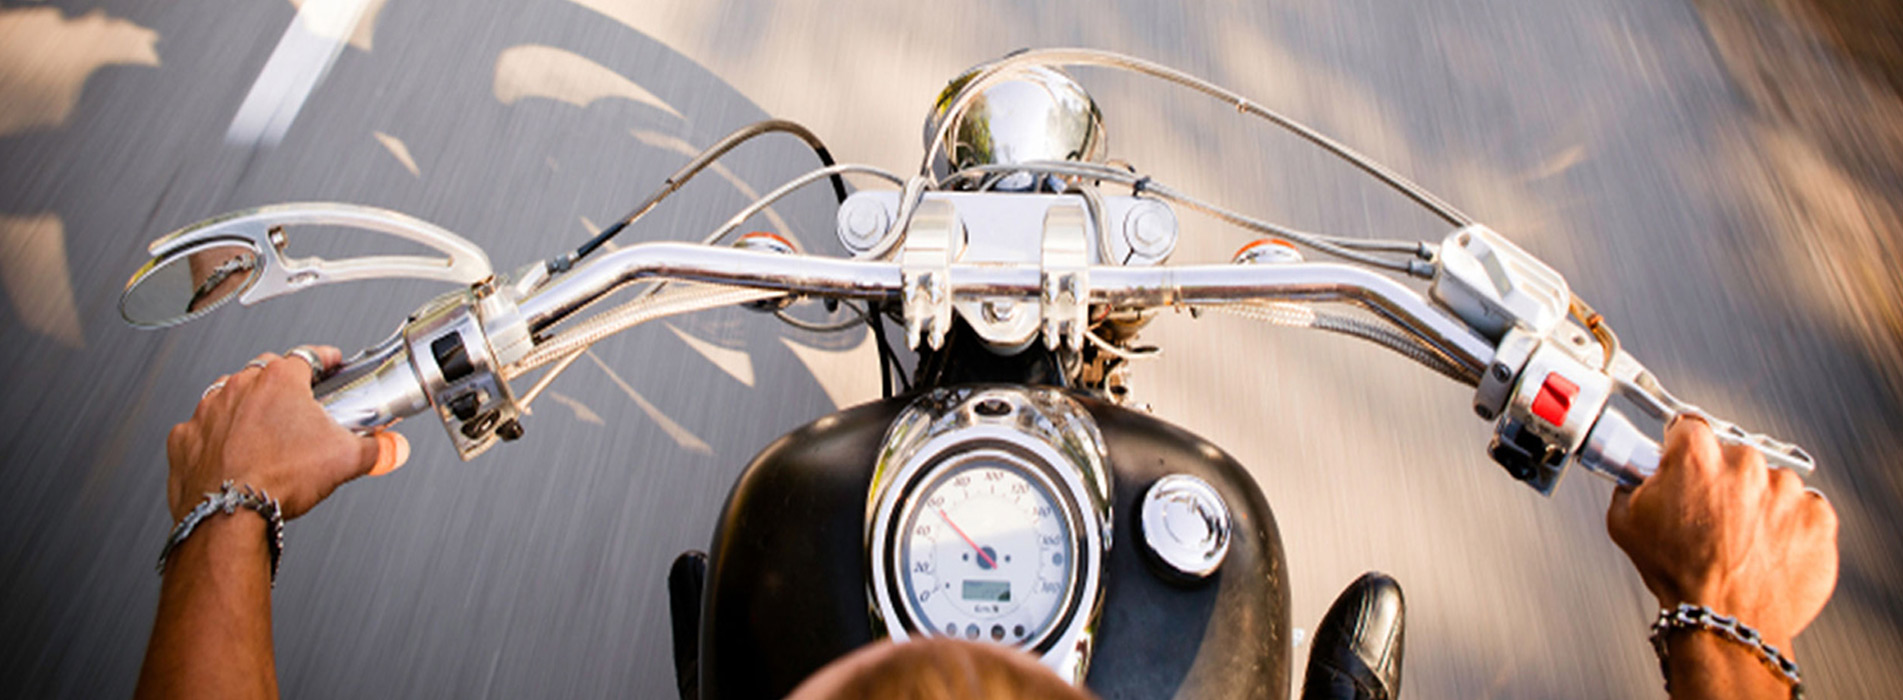 Oklahoma Motorcycle Insurance coverage